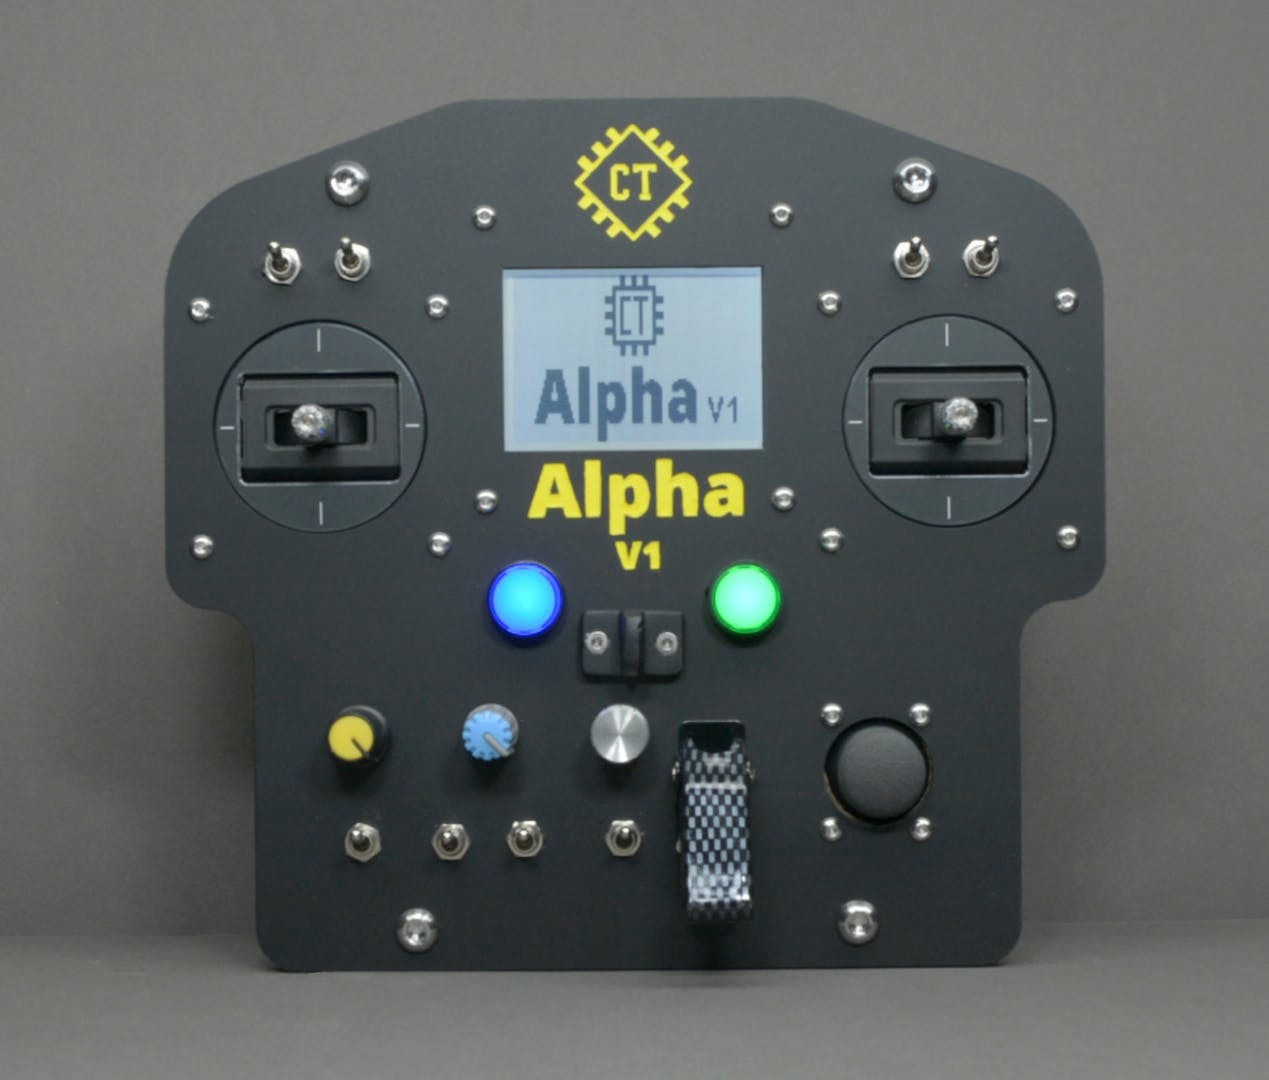 Alpha V1 with Different Input Devices (to Illustrate the Possibilities-1)